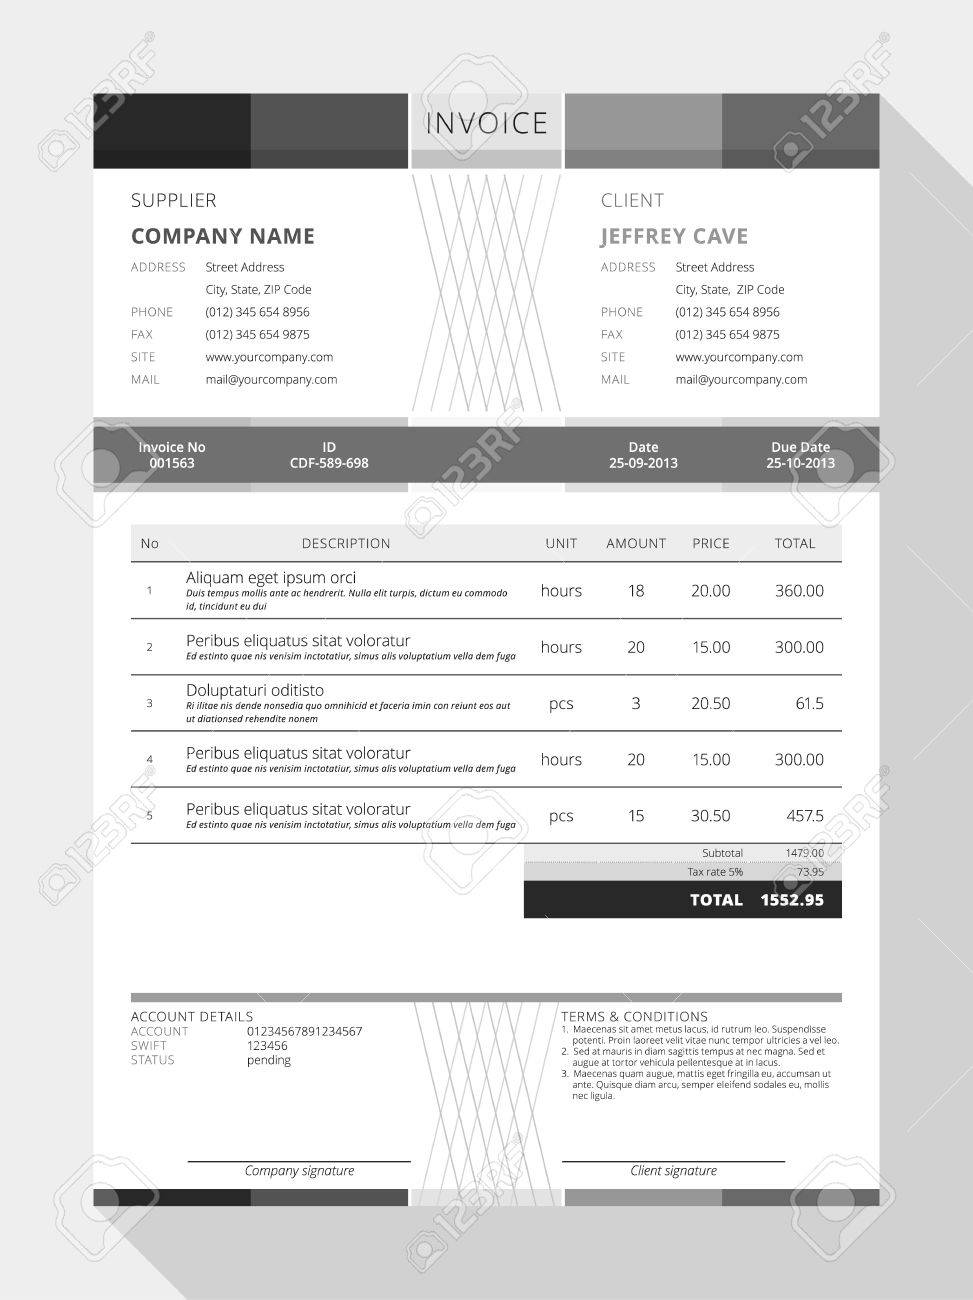 Ultrablogus  Unusual Design An Invoice  Professional Graphic Design Invoice  With Entrancing Vector Customizable Invoice Form Template Design Vector   Design An Invoice With Astounding Free Printable Invoices Templates Also Car Invoice Prices  In Addition Past Due Invoice Letter Template And Invoice Approval As Well As Invoice Sample Template Additionally Blank Printable Invoice From Happytomco With Ultrablogus  Entrancing Design An Invoice  Professional Graphic Design Invoice  With Astounding Vector Customizable Invoice Form Template Design Vector   Design An Invoice And Unusual Free Printable Invoices Templates Also Car Invoice Prices  In Addition Past Due Invoice Letter Template From Happytomco